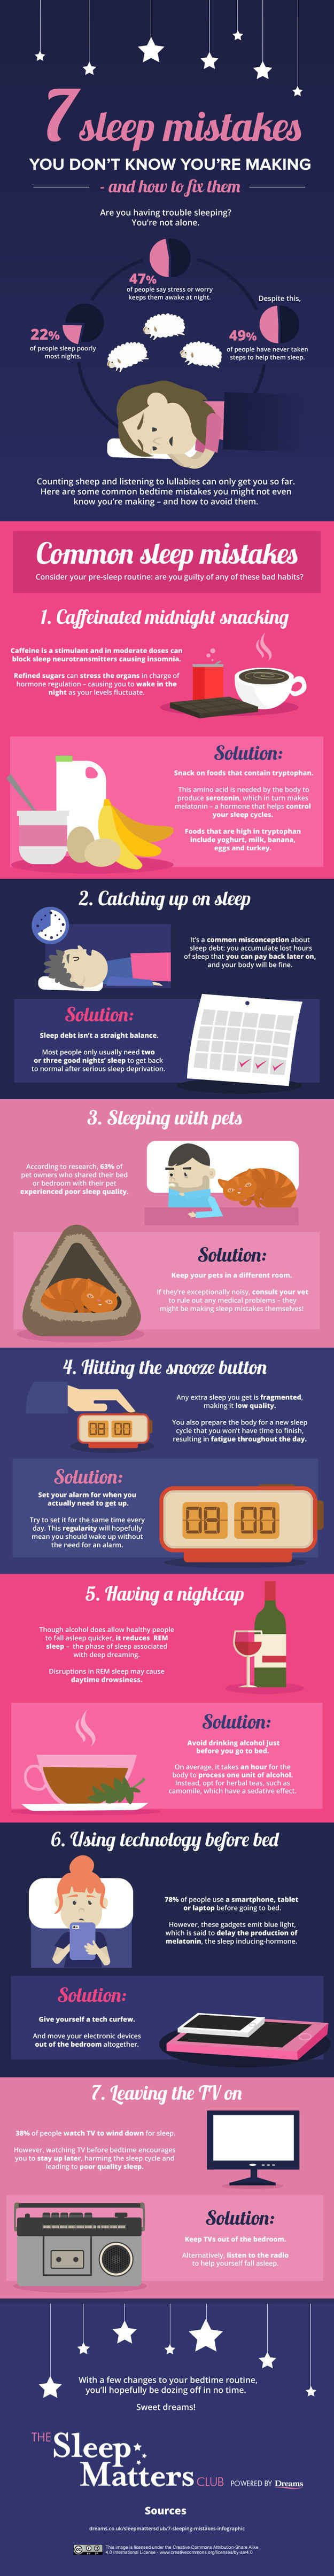 Several helpful info graphics about sleep. These are cool.